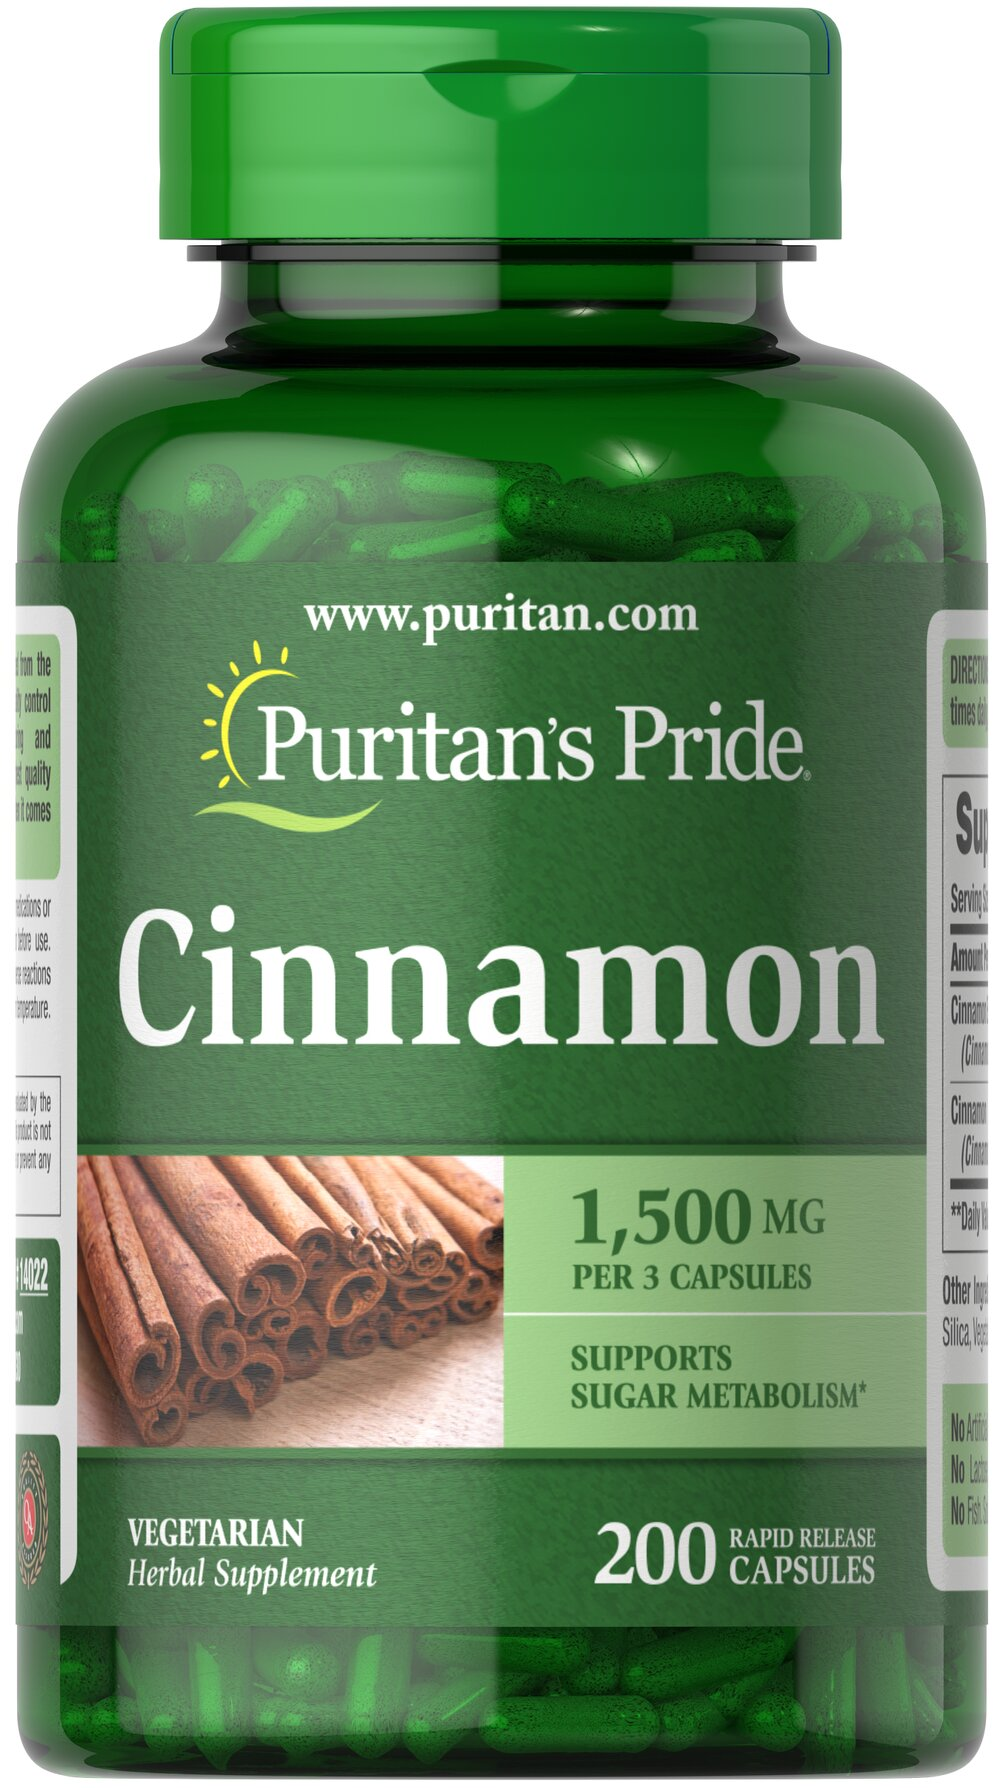 Cinnamon 500 mg <p>This ancient herb has been referenced in Oriental scripts dating back thousands of years. As an herbal addition to your health program, cinnamon may help support sugar metabolism.** Adults can take two capsules a day, preferably with a meal.</p><ul><li>Puritan's Pride's perservative-free gelatin capsules contain pure milled herb powder.</li><li>Puritan's Pride's Natural Whole Herb products utilize ground plant parts to provid